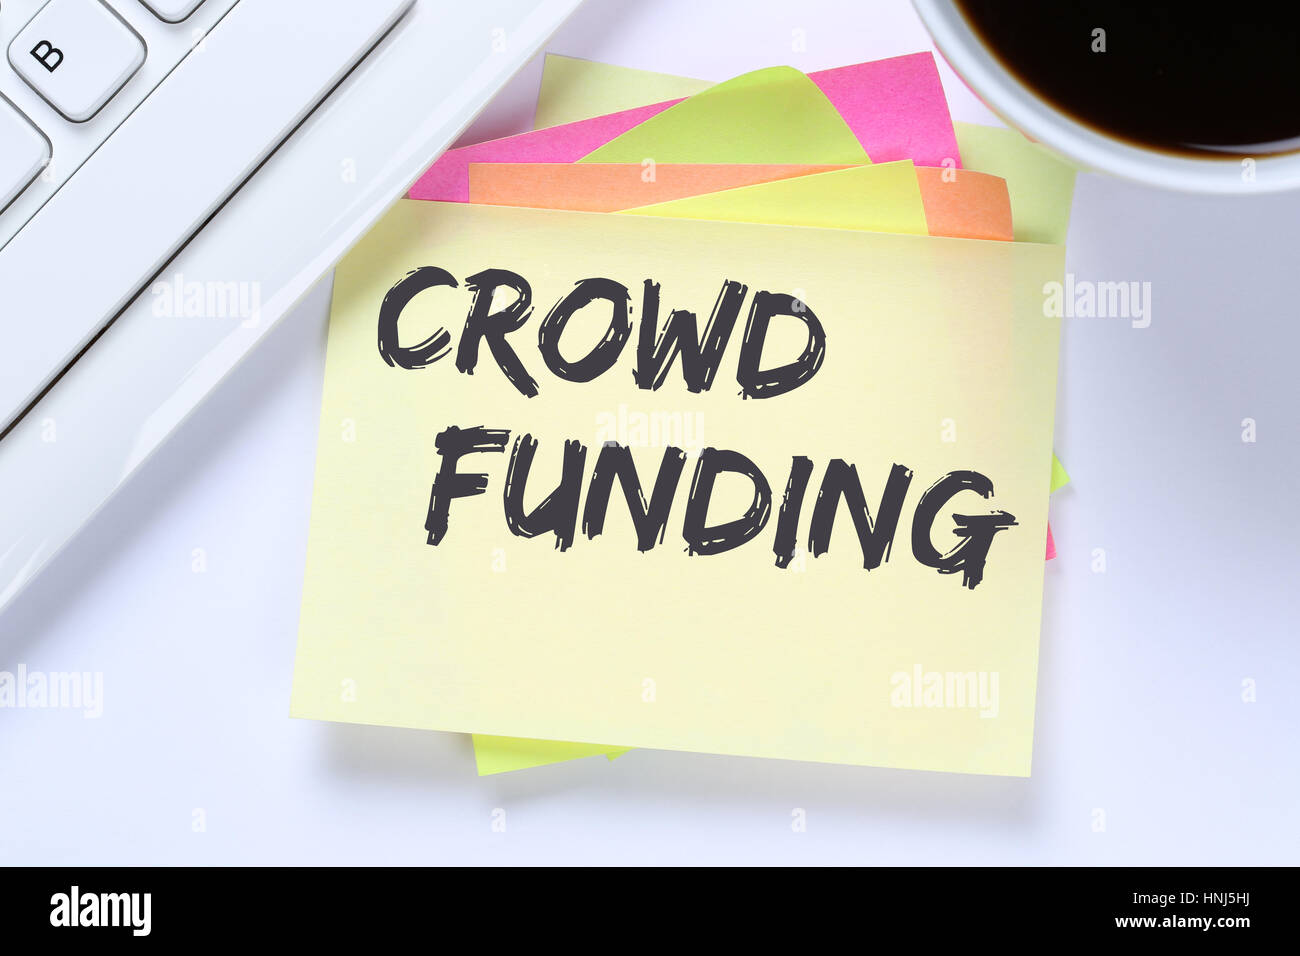 Crowd funding crowdfunding collecting money online investment internet business desk computer keyboard - Stock Image